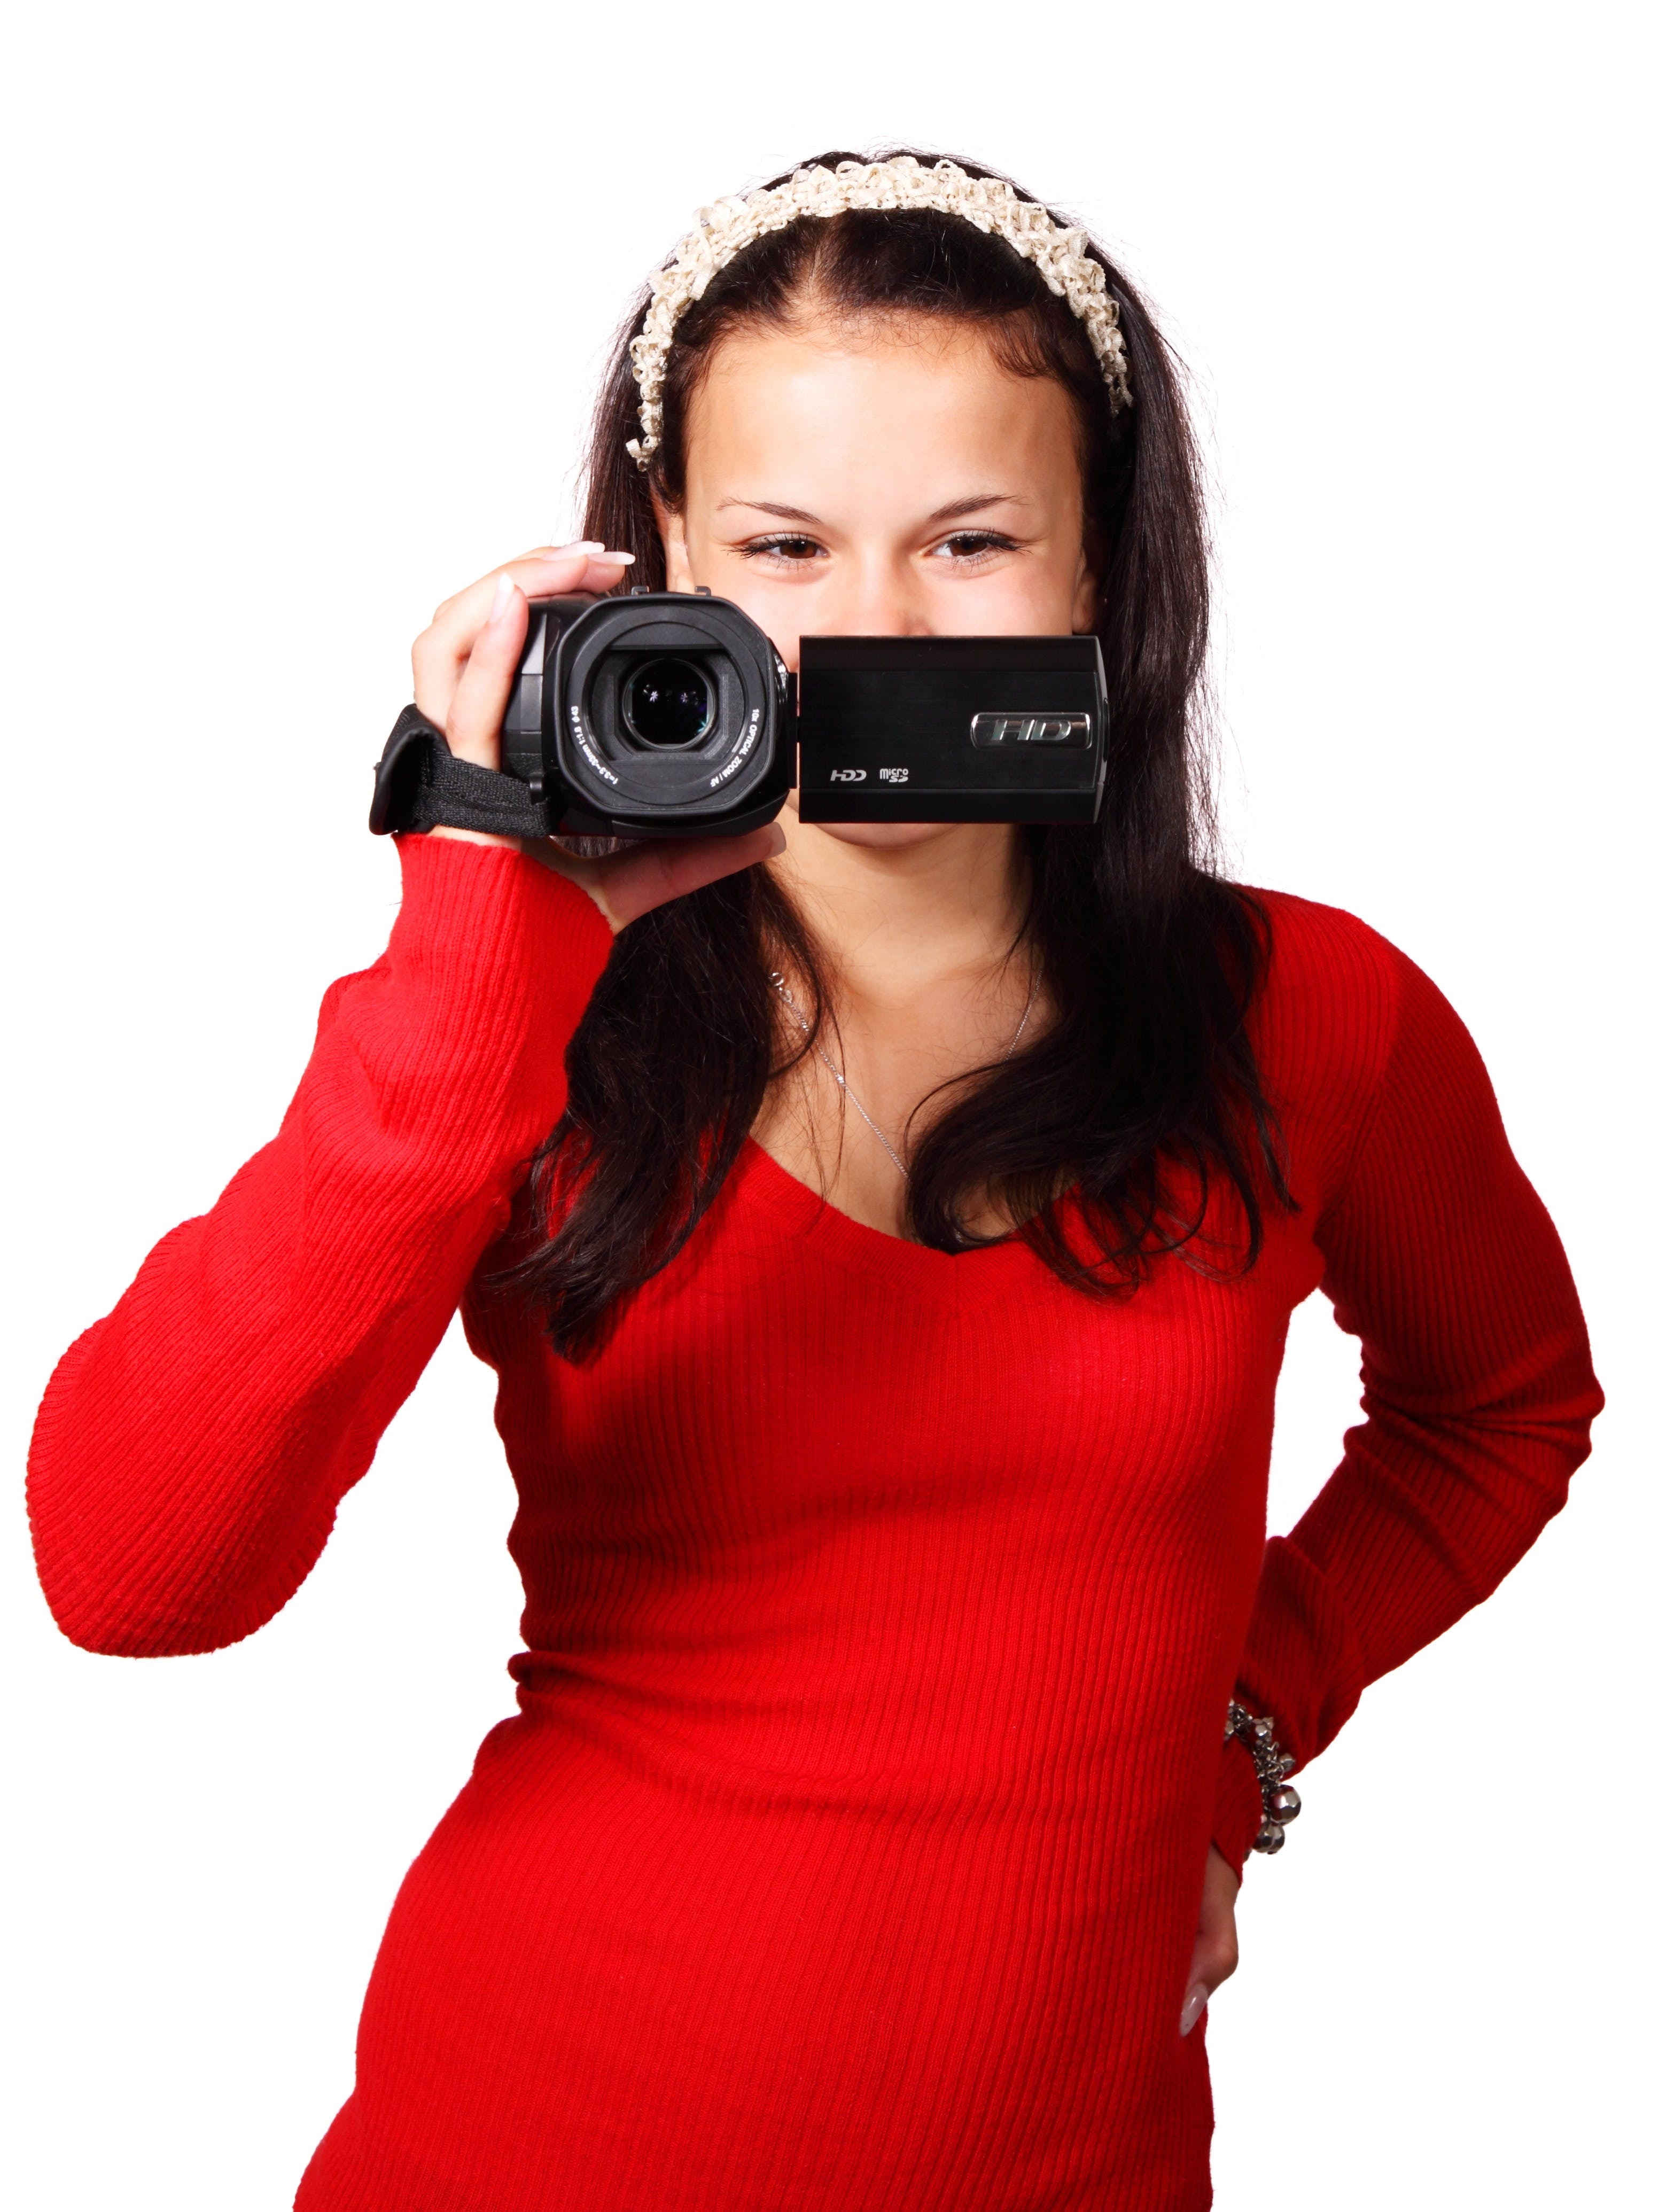 Woman Holding a Black Video Camera